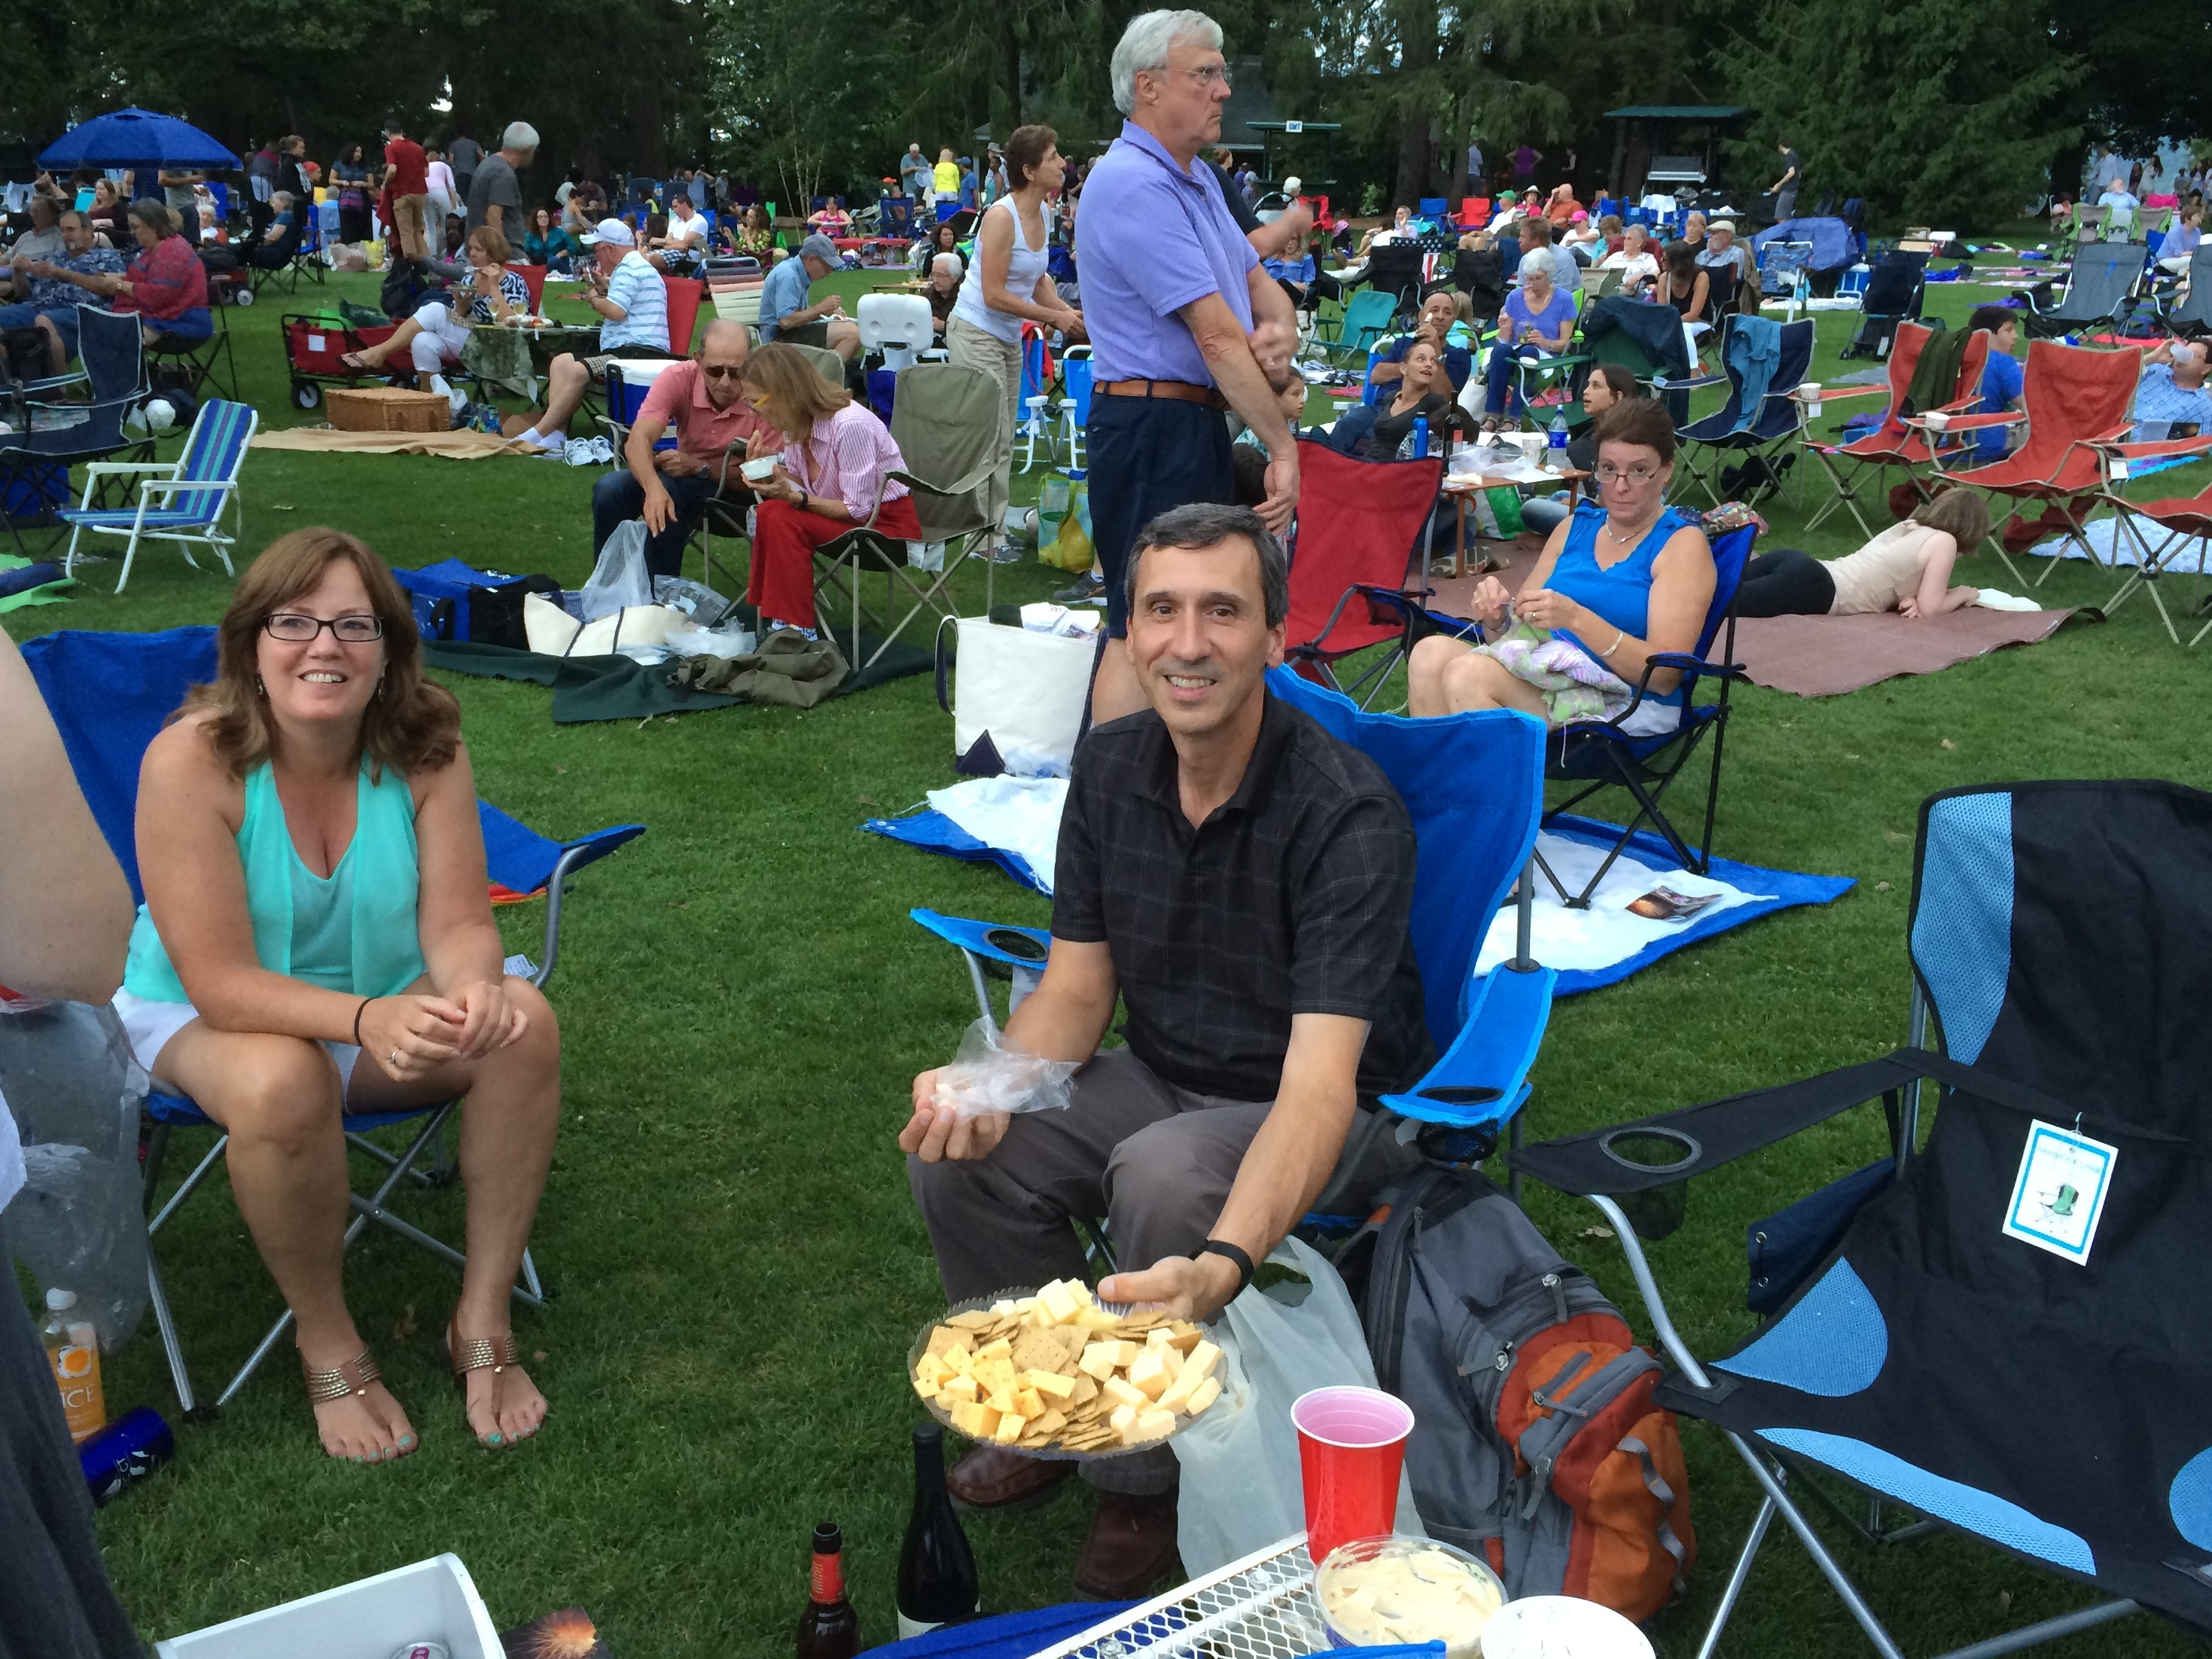 People picknicking on the lawn at Tanglewood music center